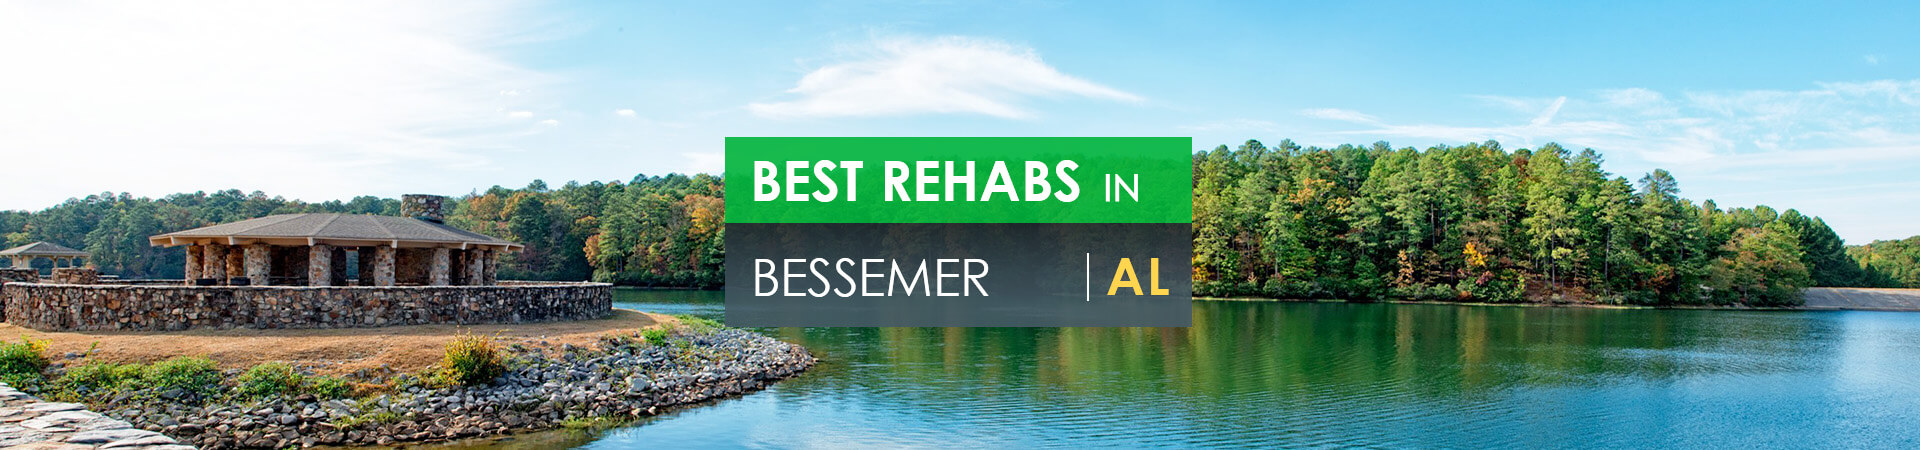 Best rehabs in Bessemer, AL